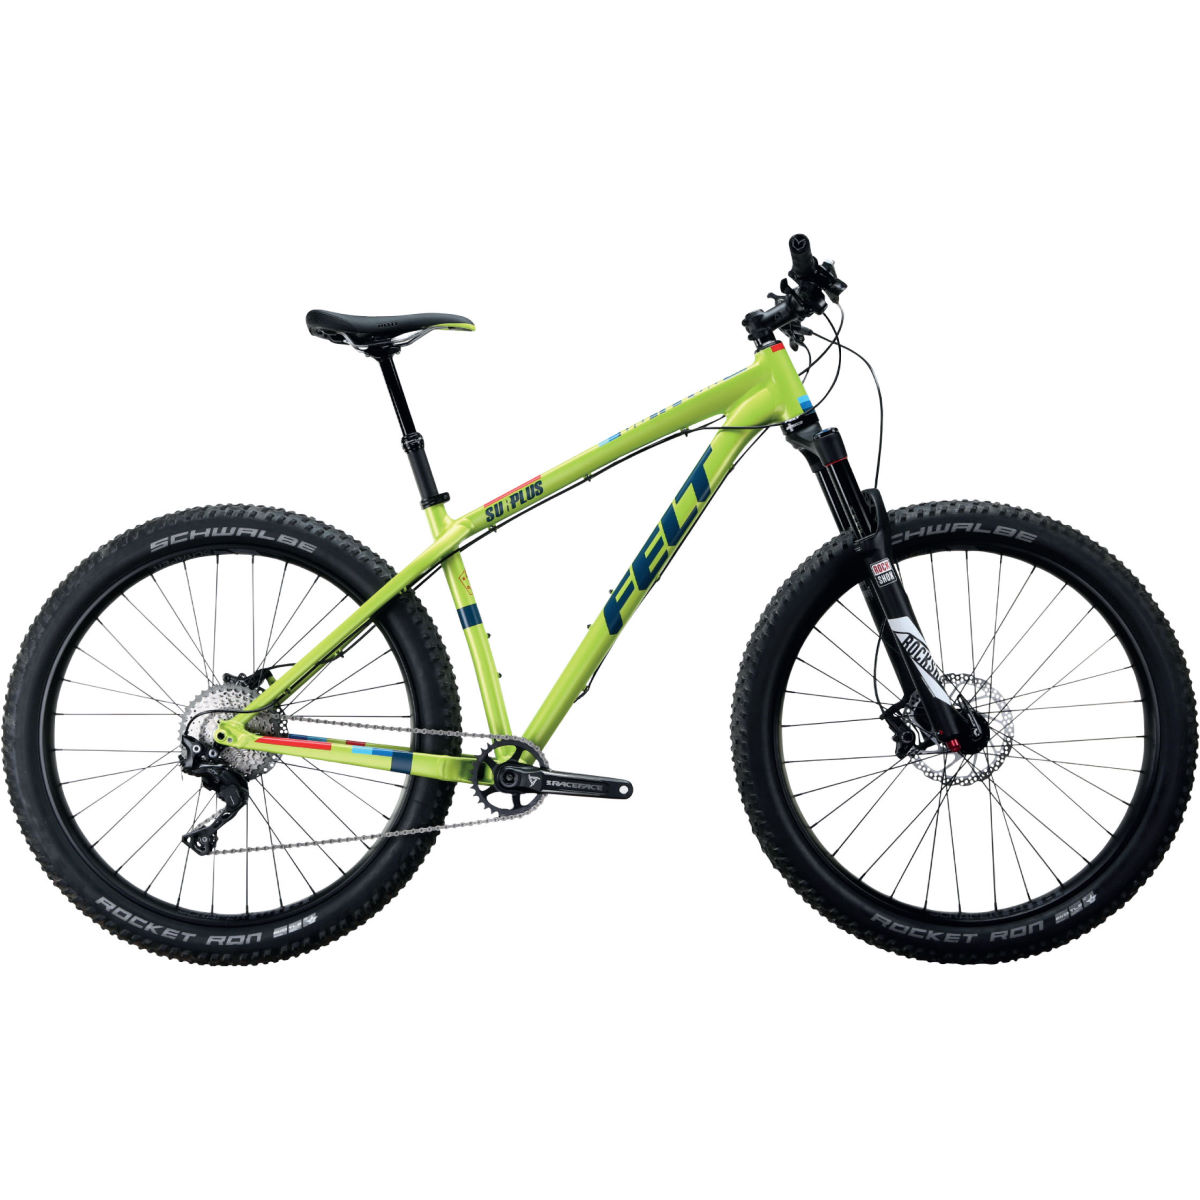 VTT Felt Surplus 10 - 16'' Stock Bike Vert VTT semi-rigides